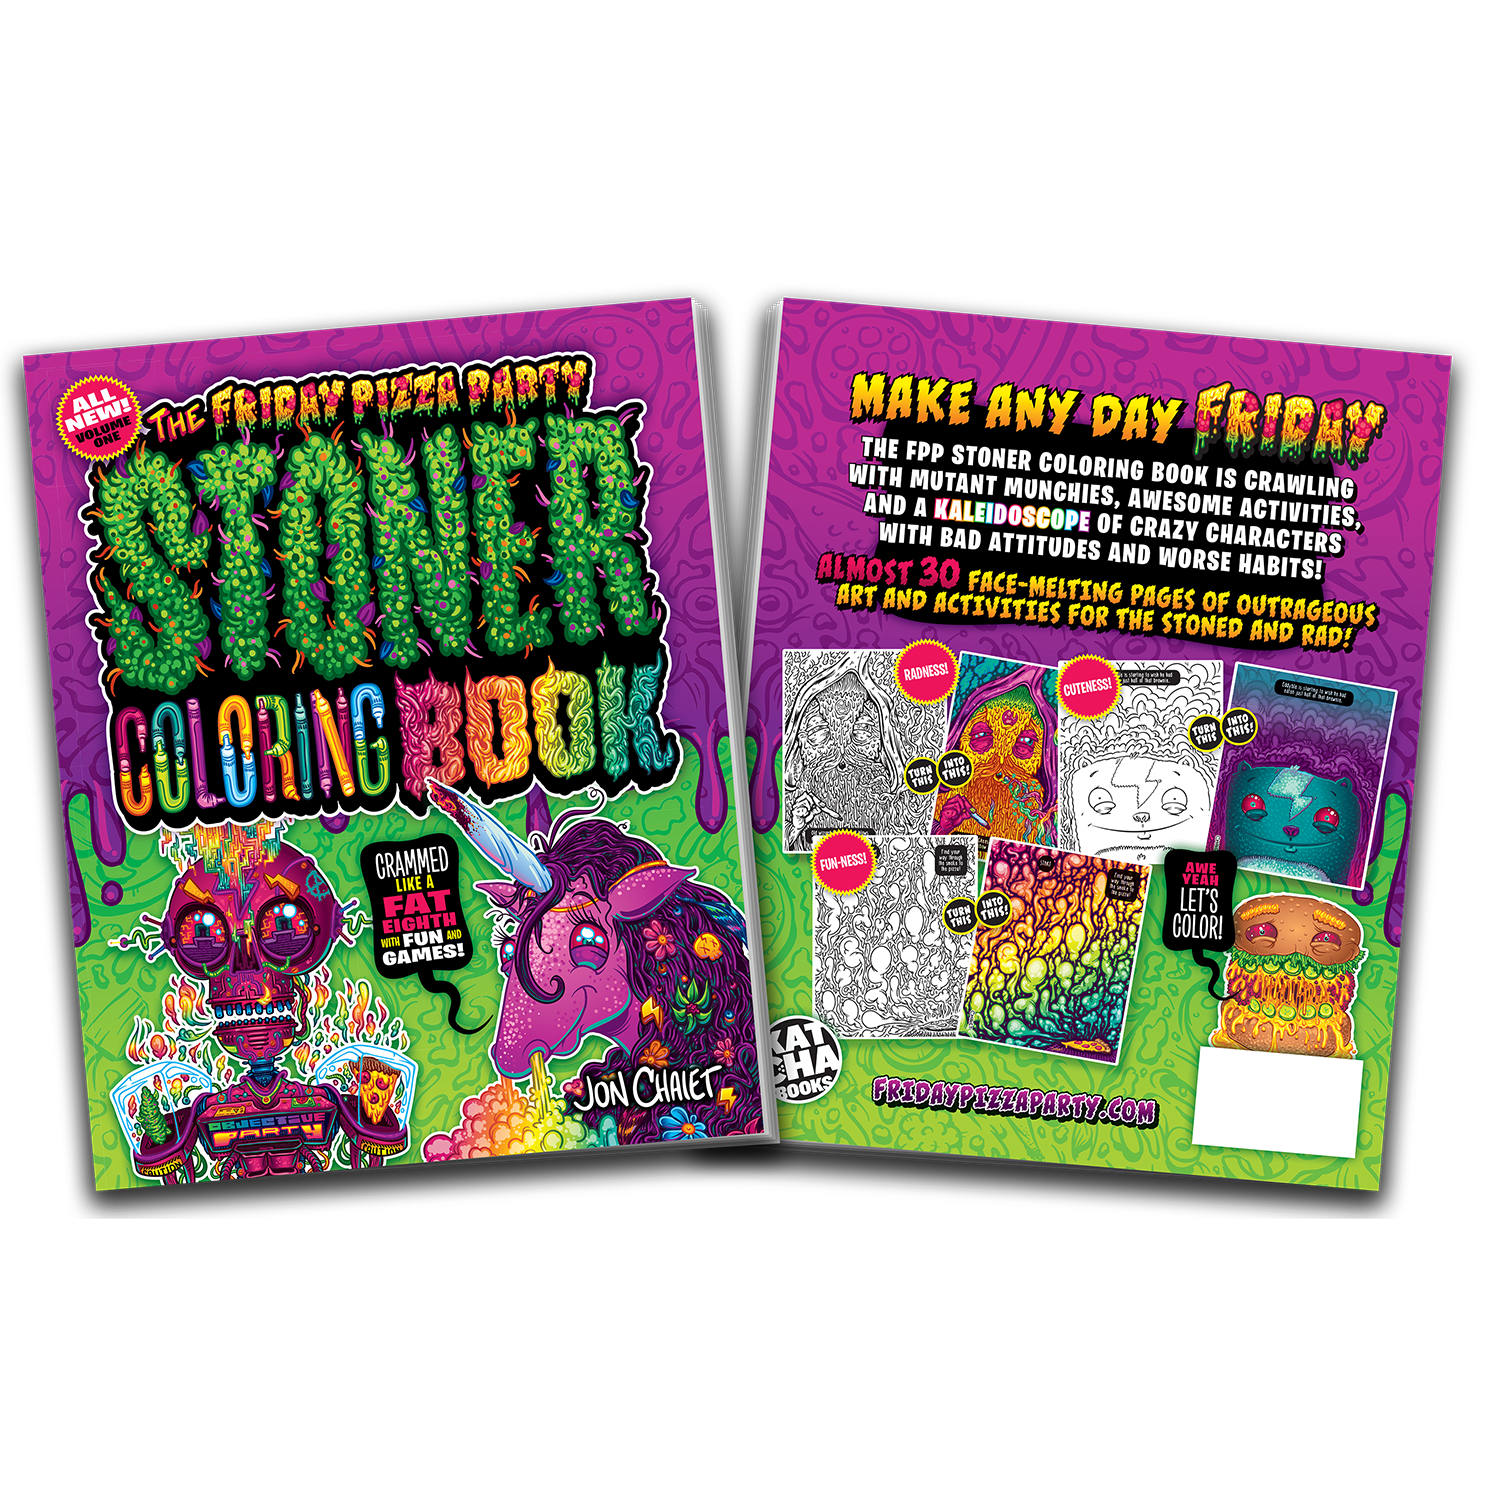 - The FPP Stoner Coloring Book — FRIDAY PIZZA PARTY